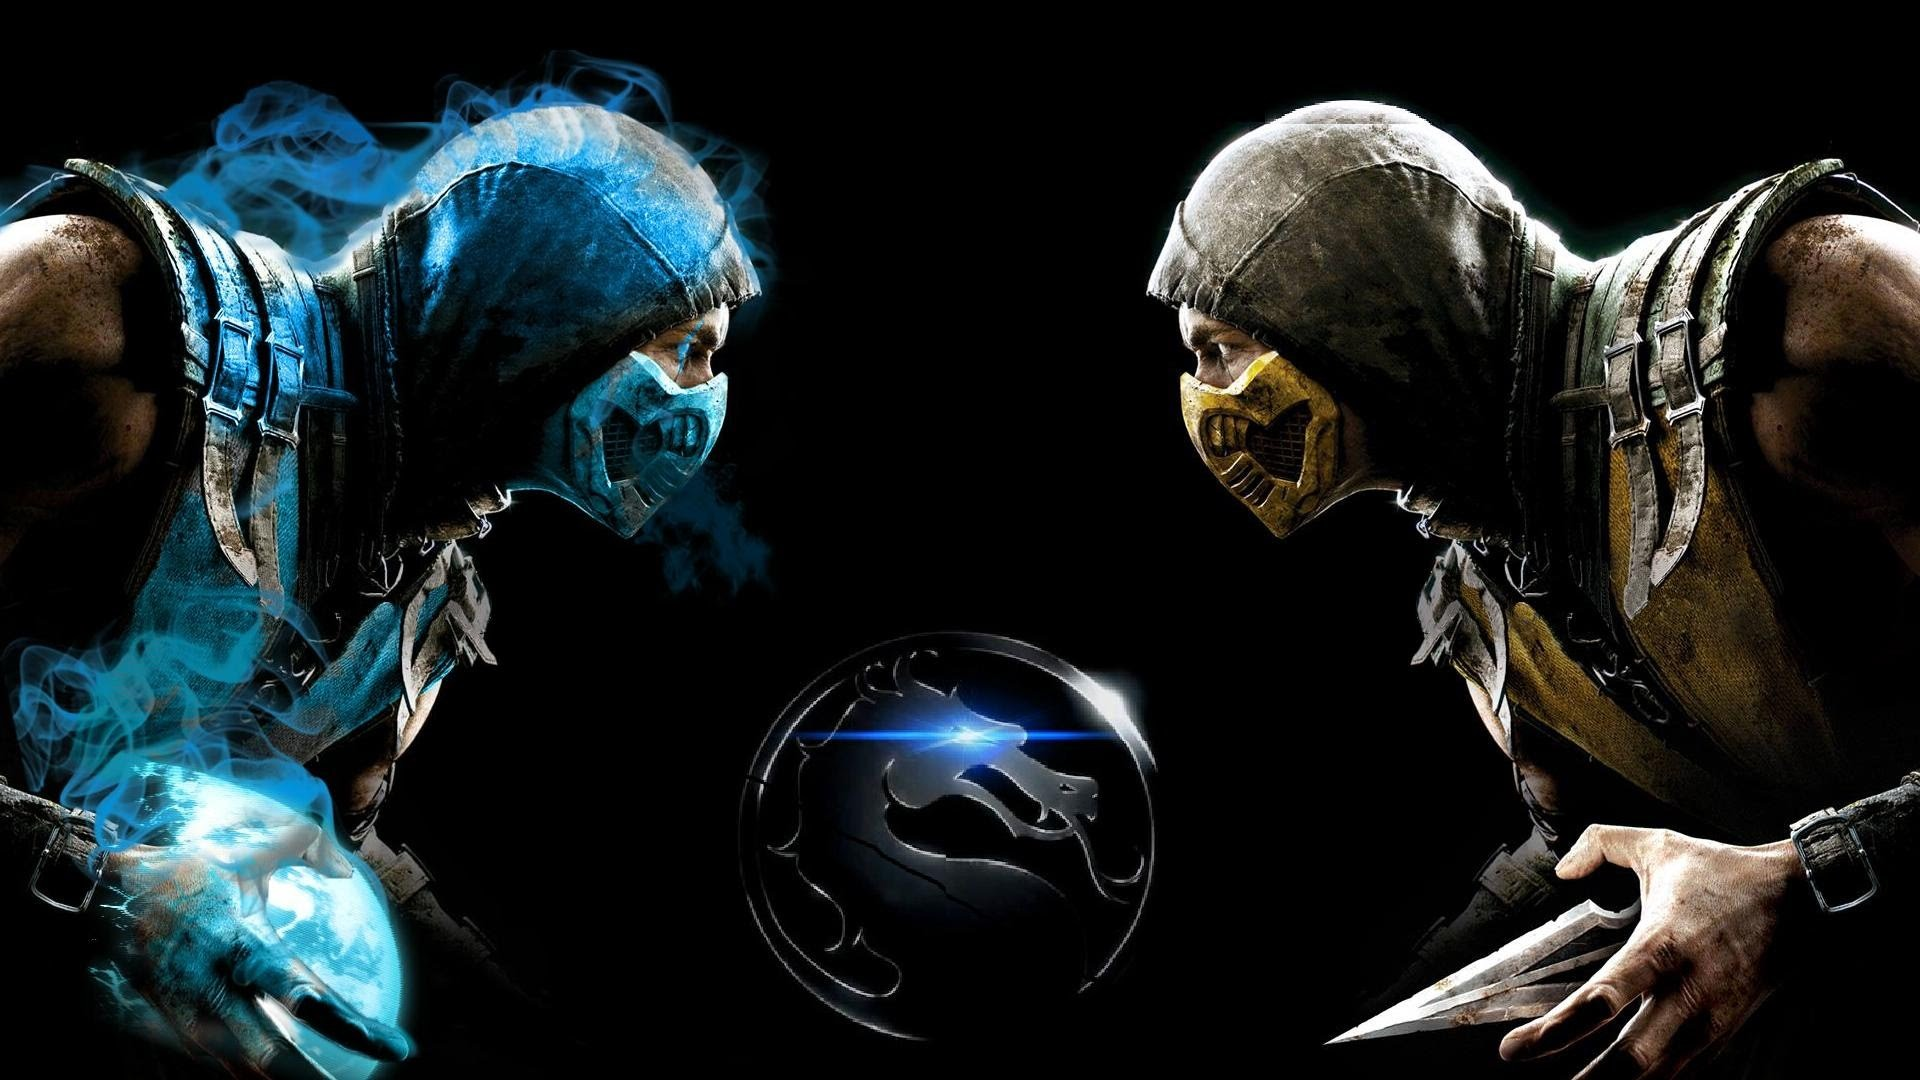 Mortal Kombat Scorpion vs Sub Zero Wallpaper �  WallpaperTag